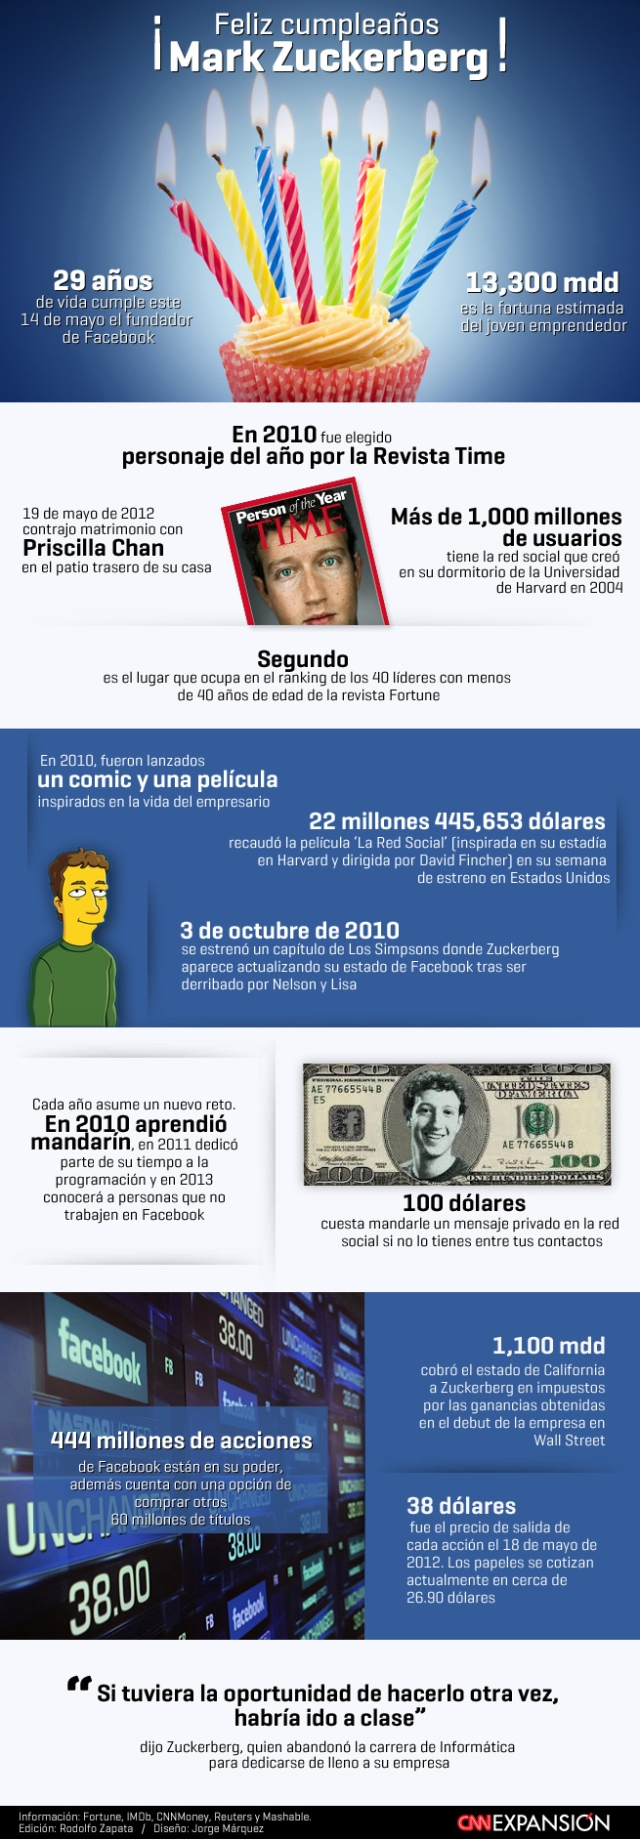 Algunos datos sobre Mark Zuckerberg